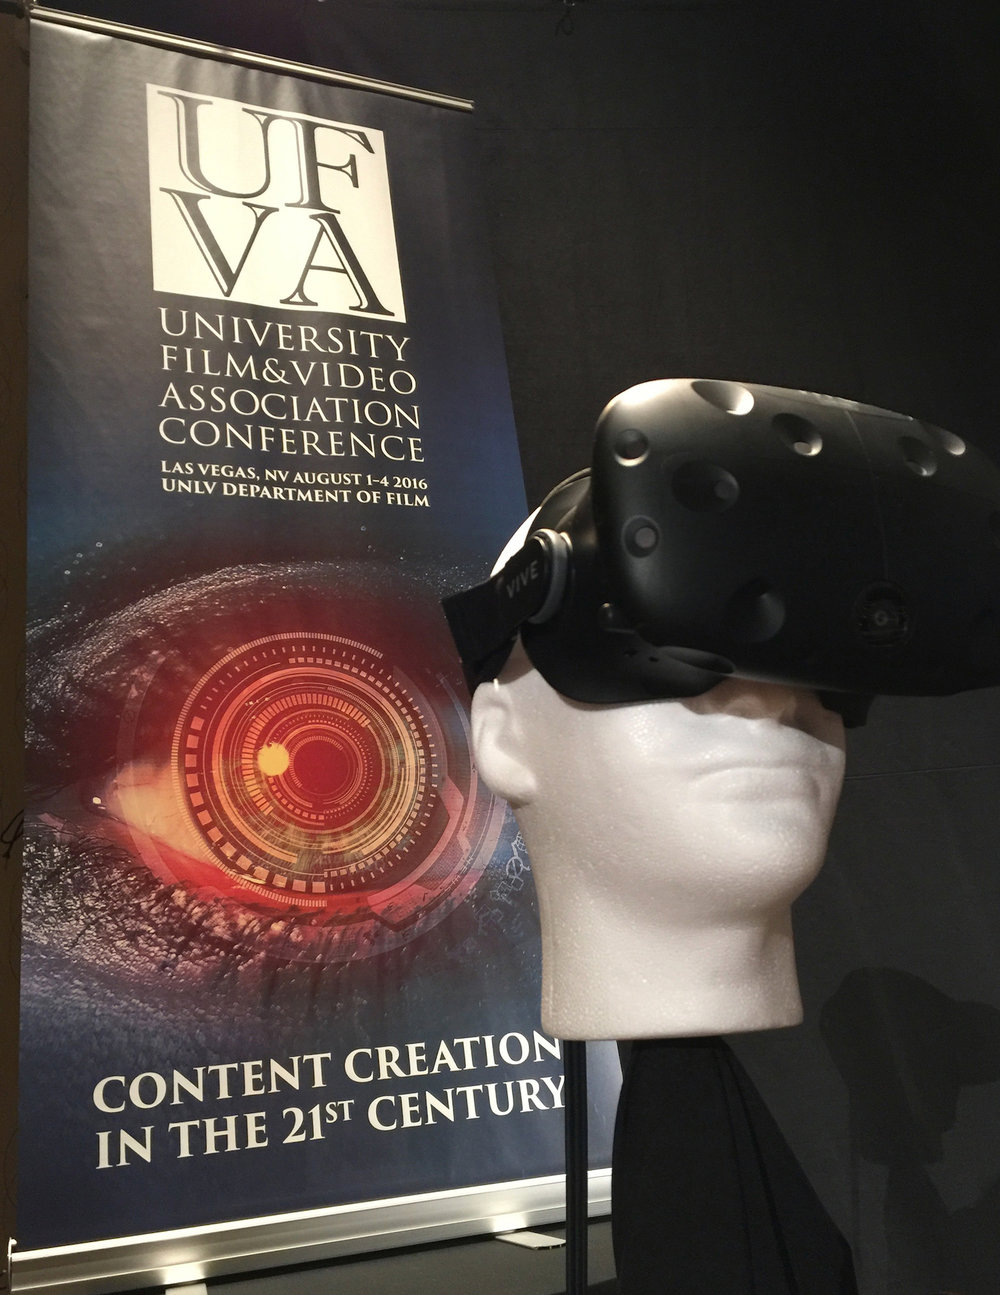 CNA Digital Innovation Day opened the 2016 UFVA Conference